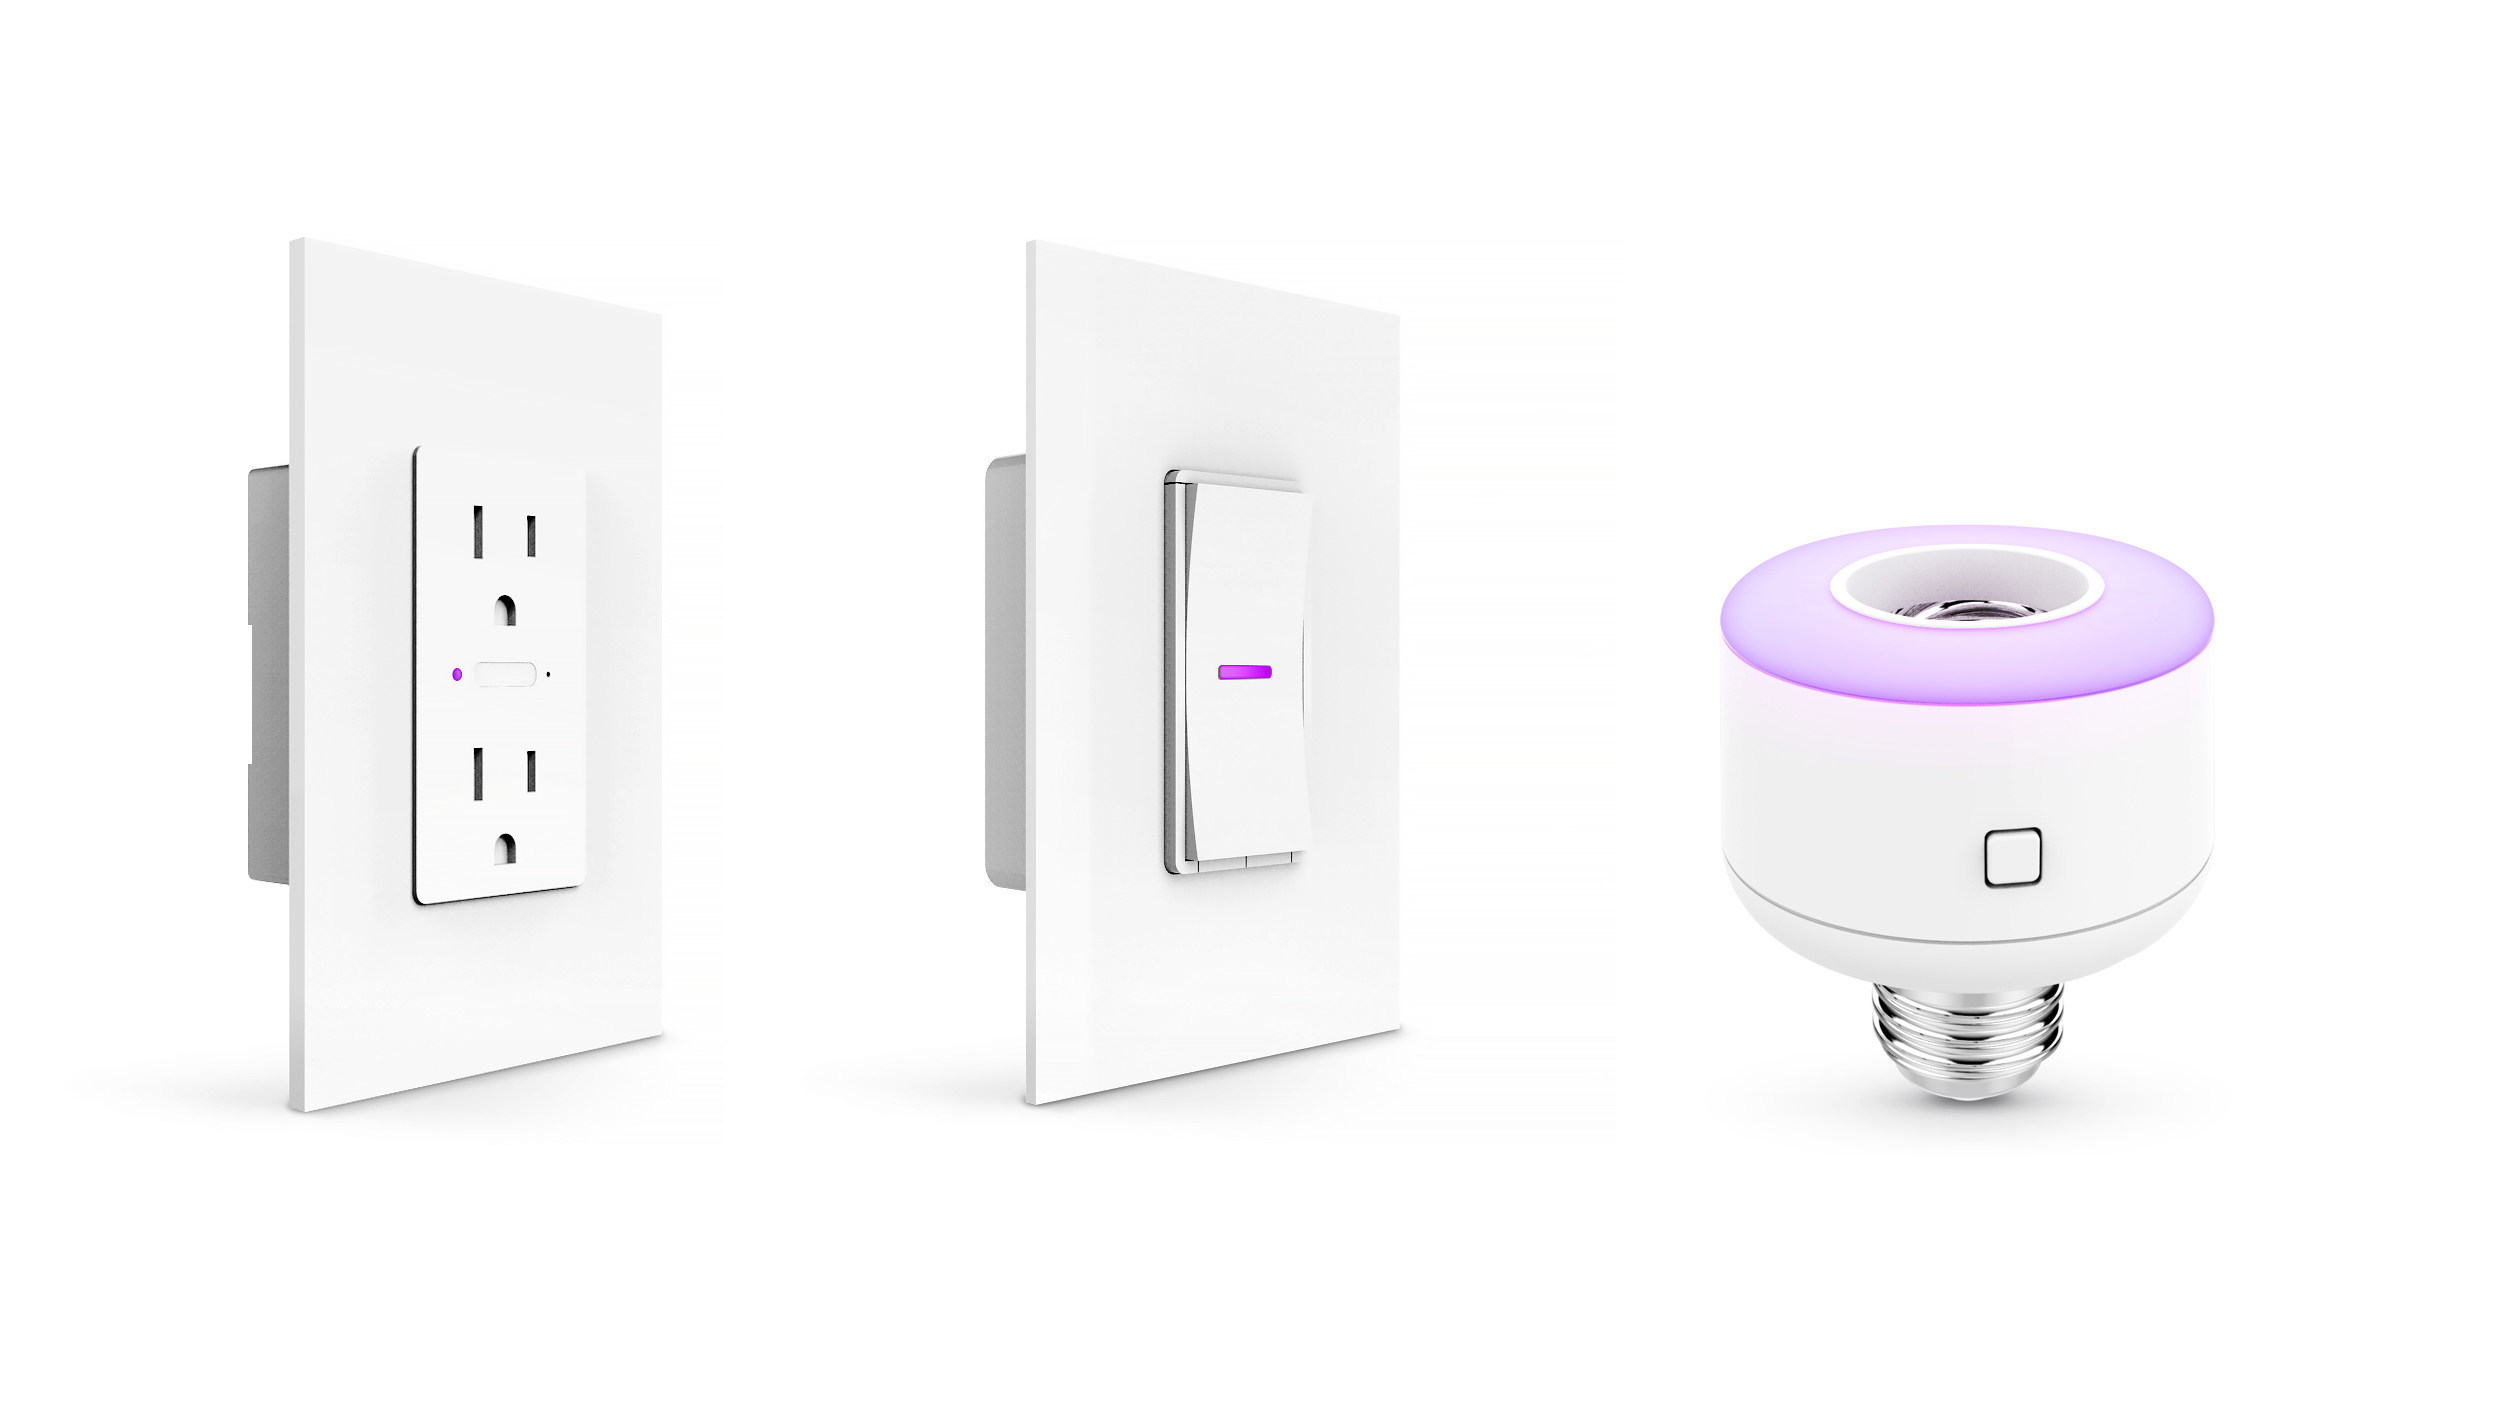 idevices announces four new connected home products